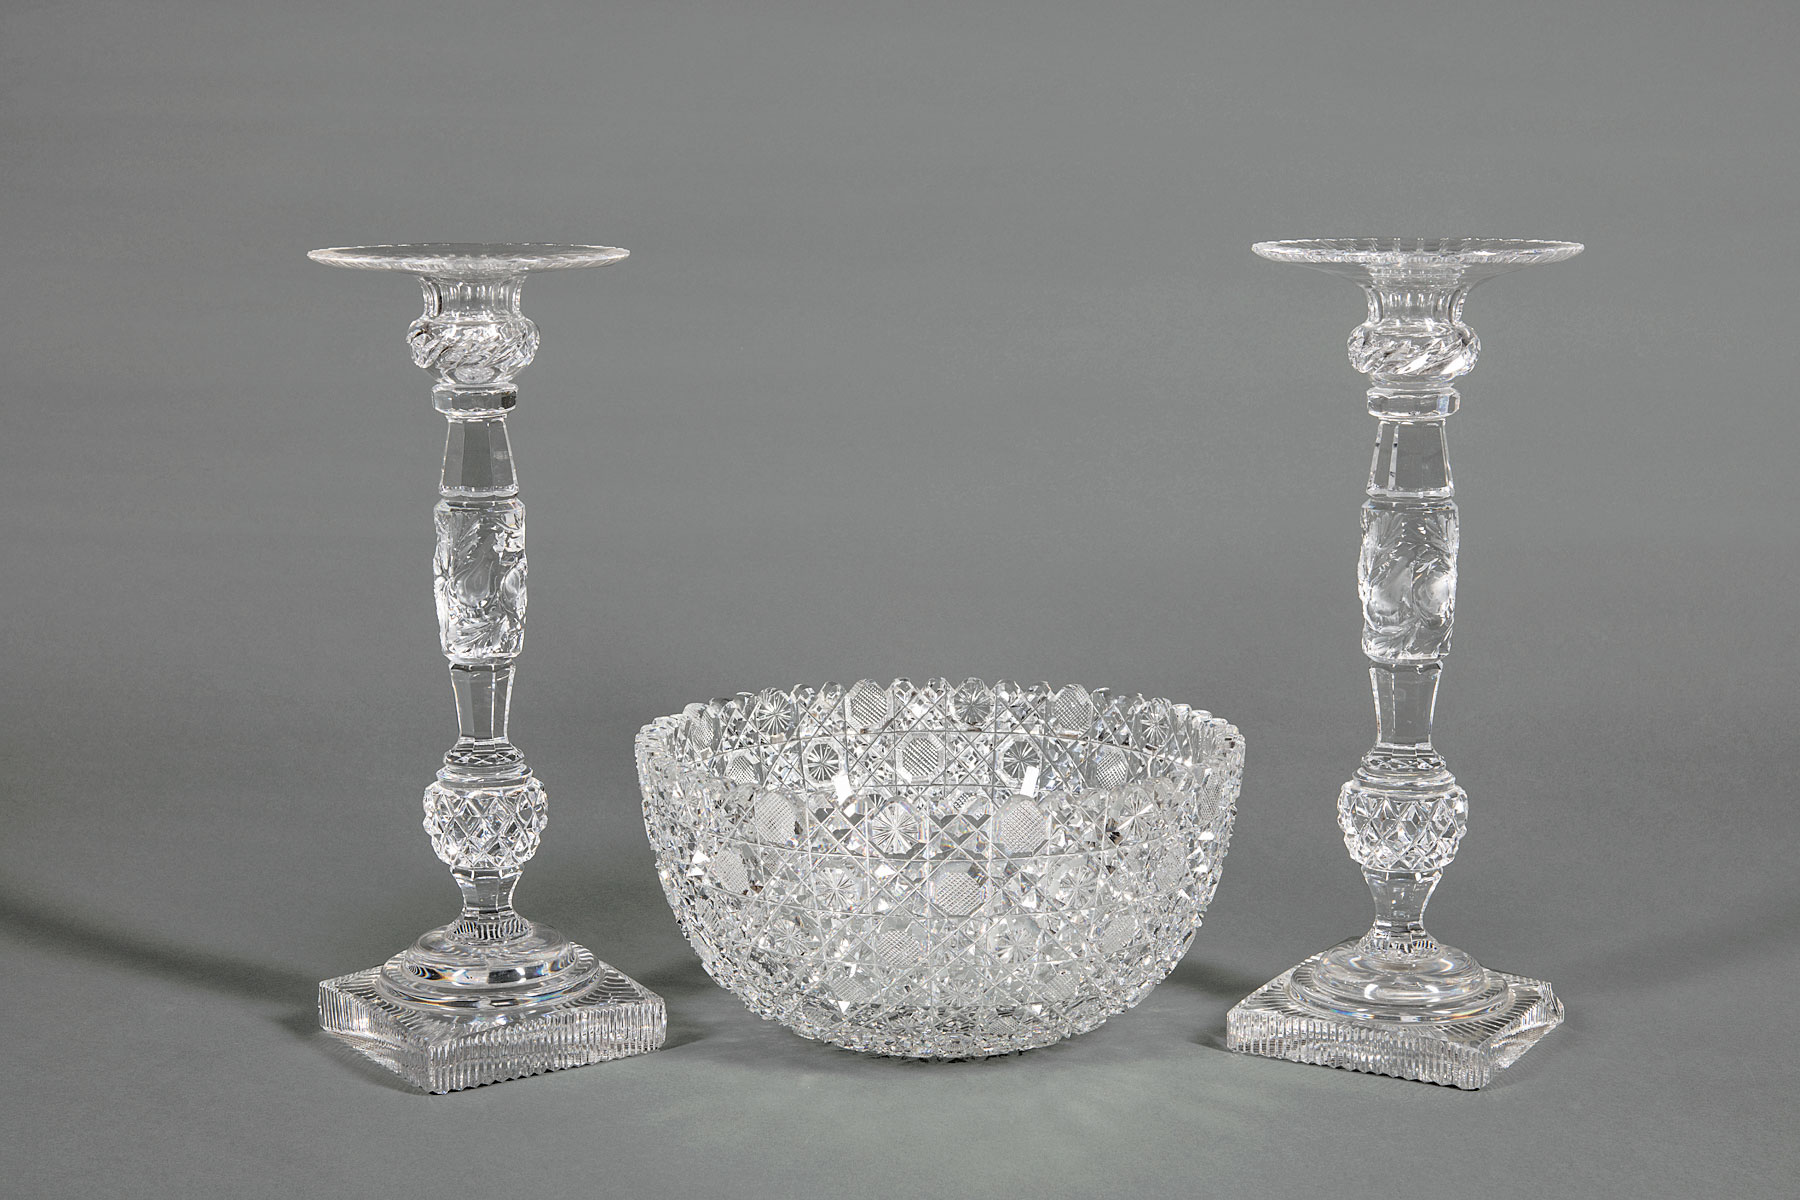 Lot 992 - Pair of Cut Crystal Candlesticks and Bowl , h. 12 1/2 in. and h. 5 in., dia. 10 in . Provenance: